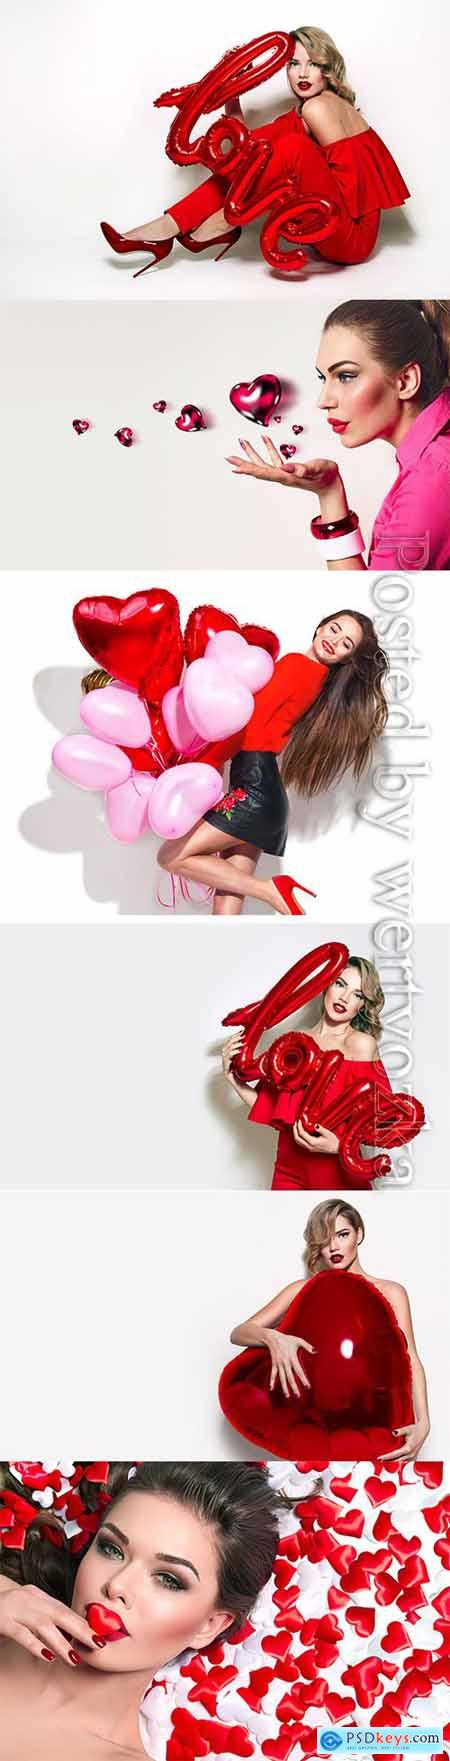 Girls with hearts balloons